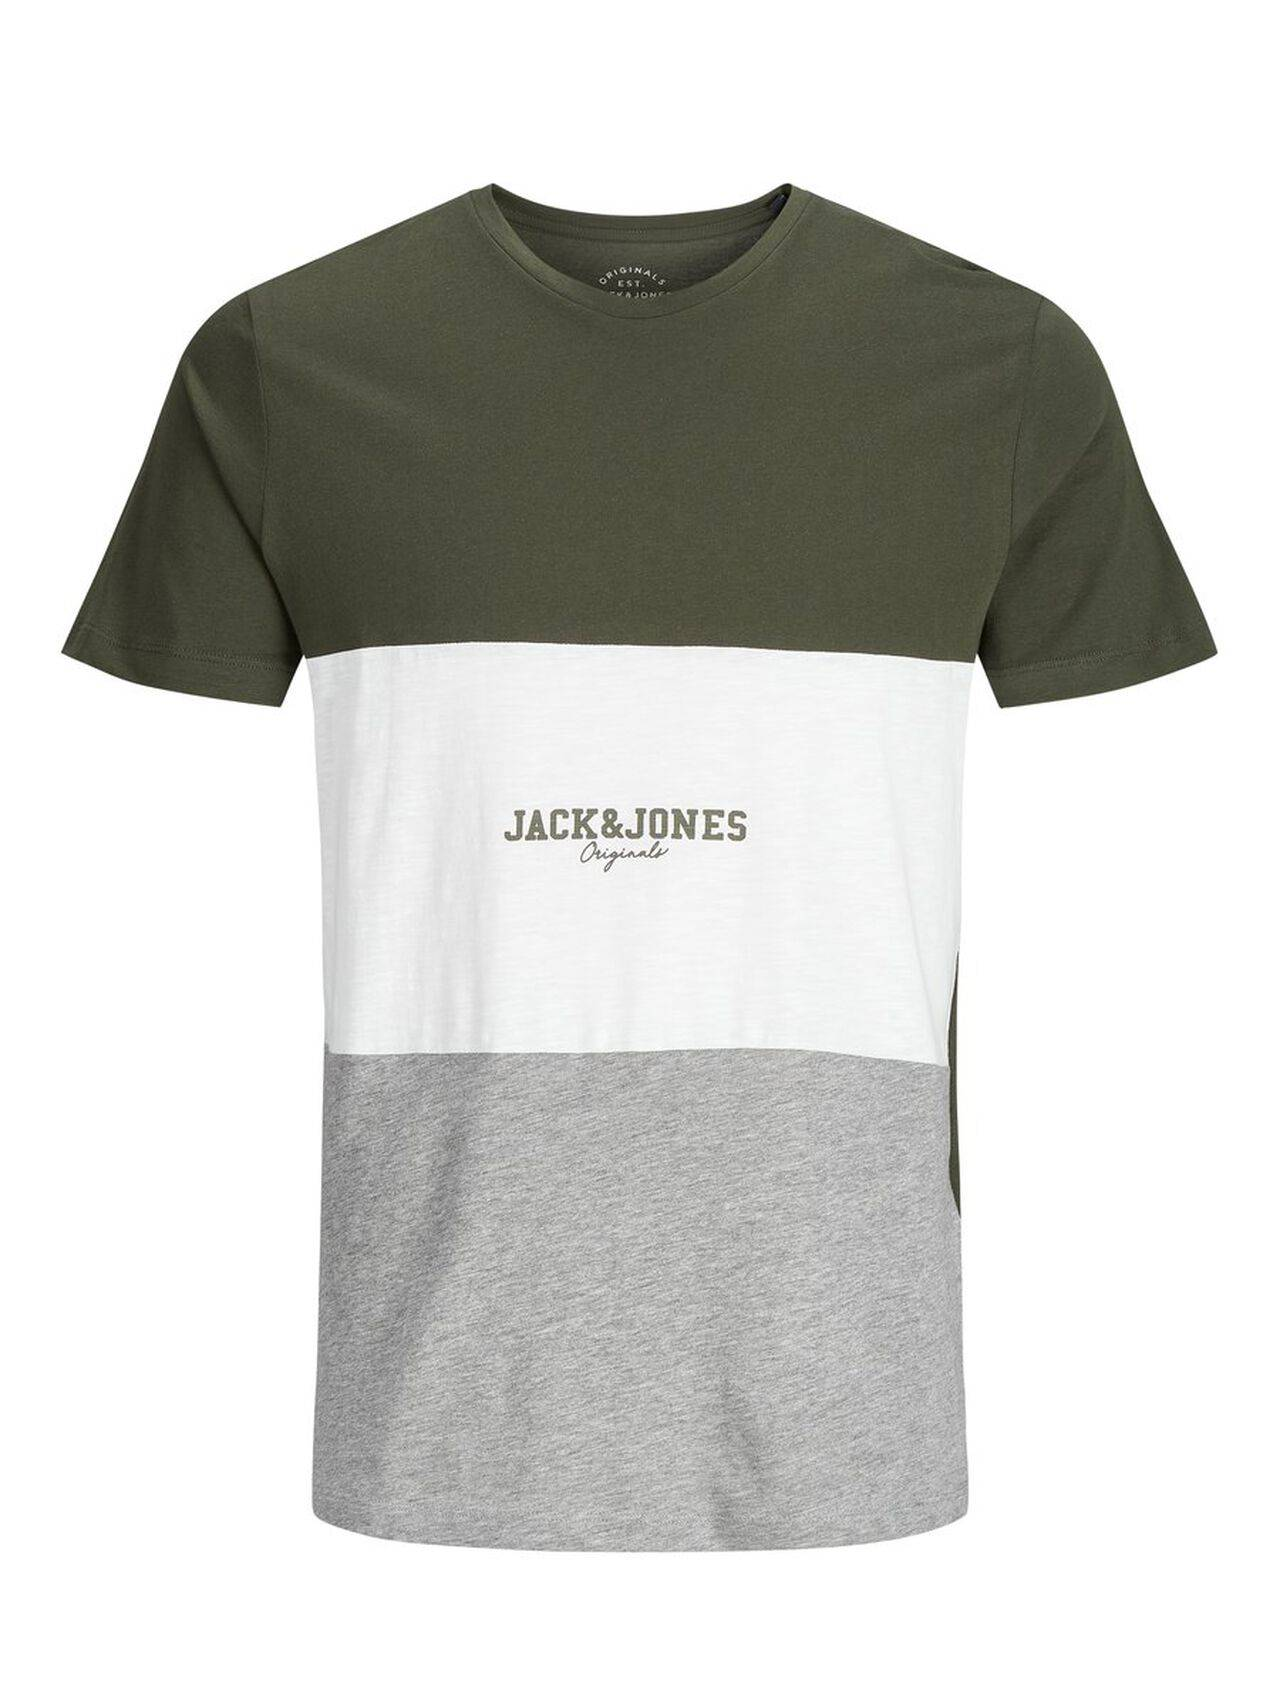 JACK & JONES Colour Block T-shirt Men Green ForestNight